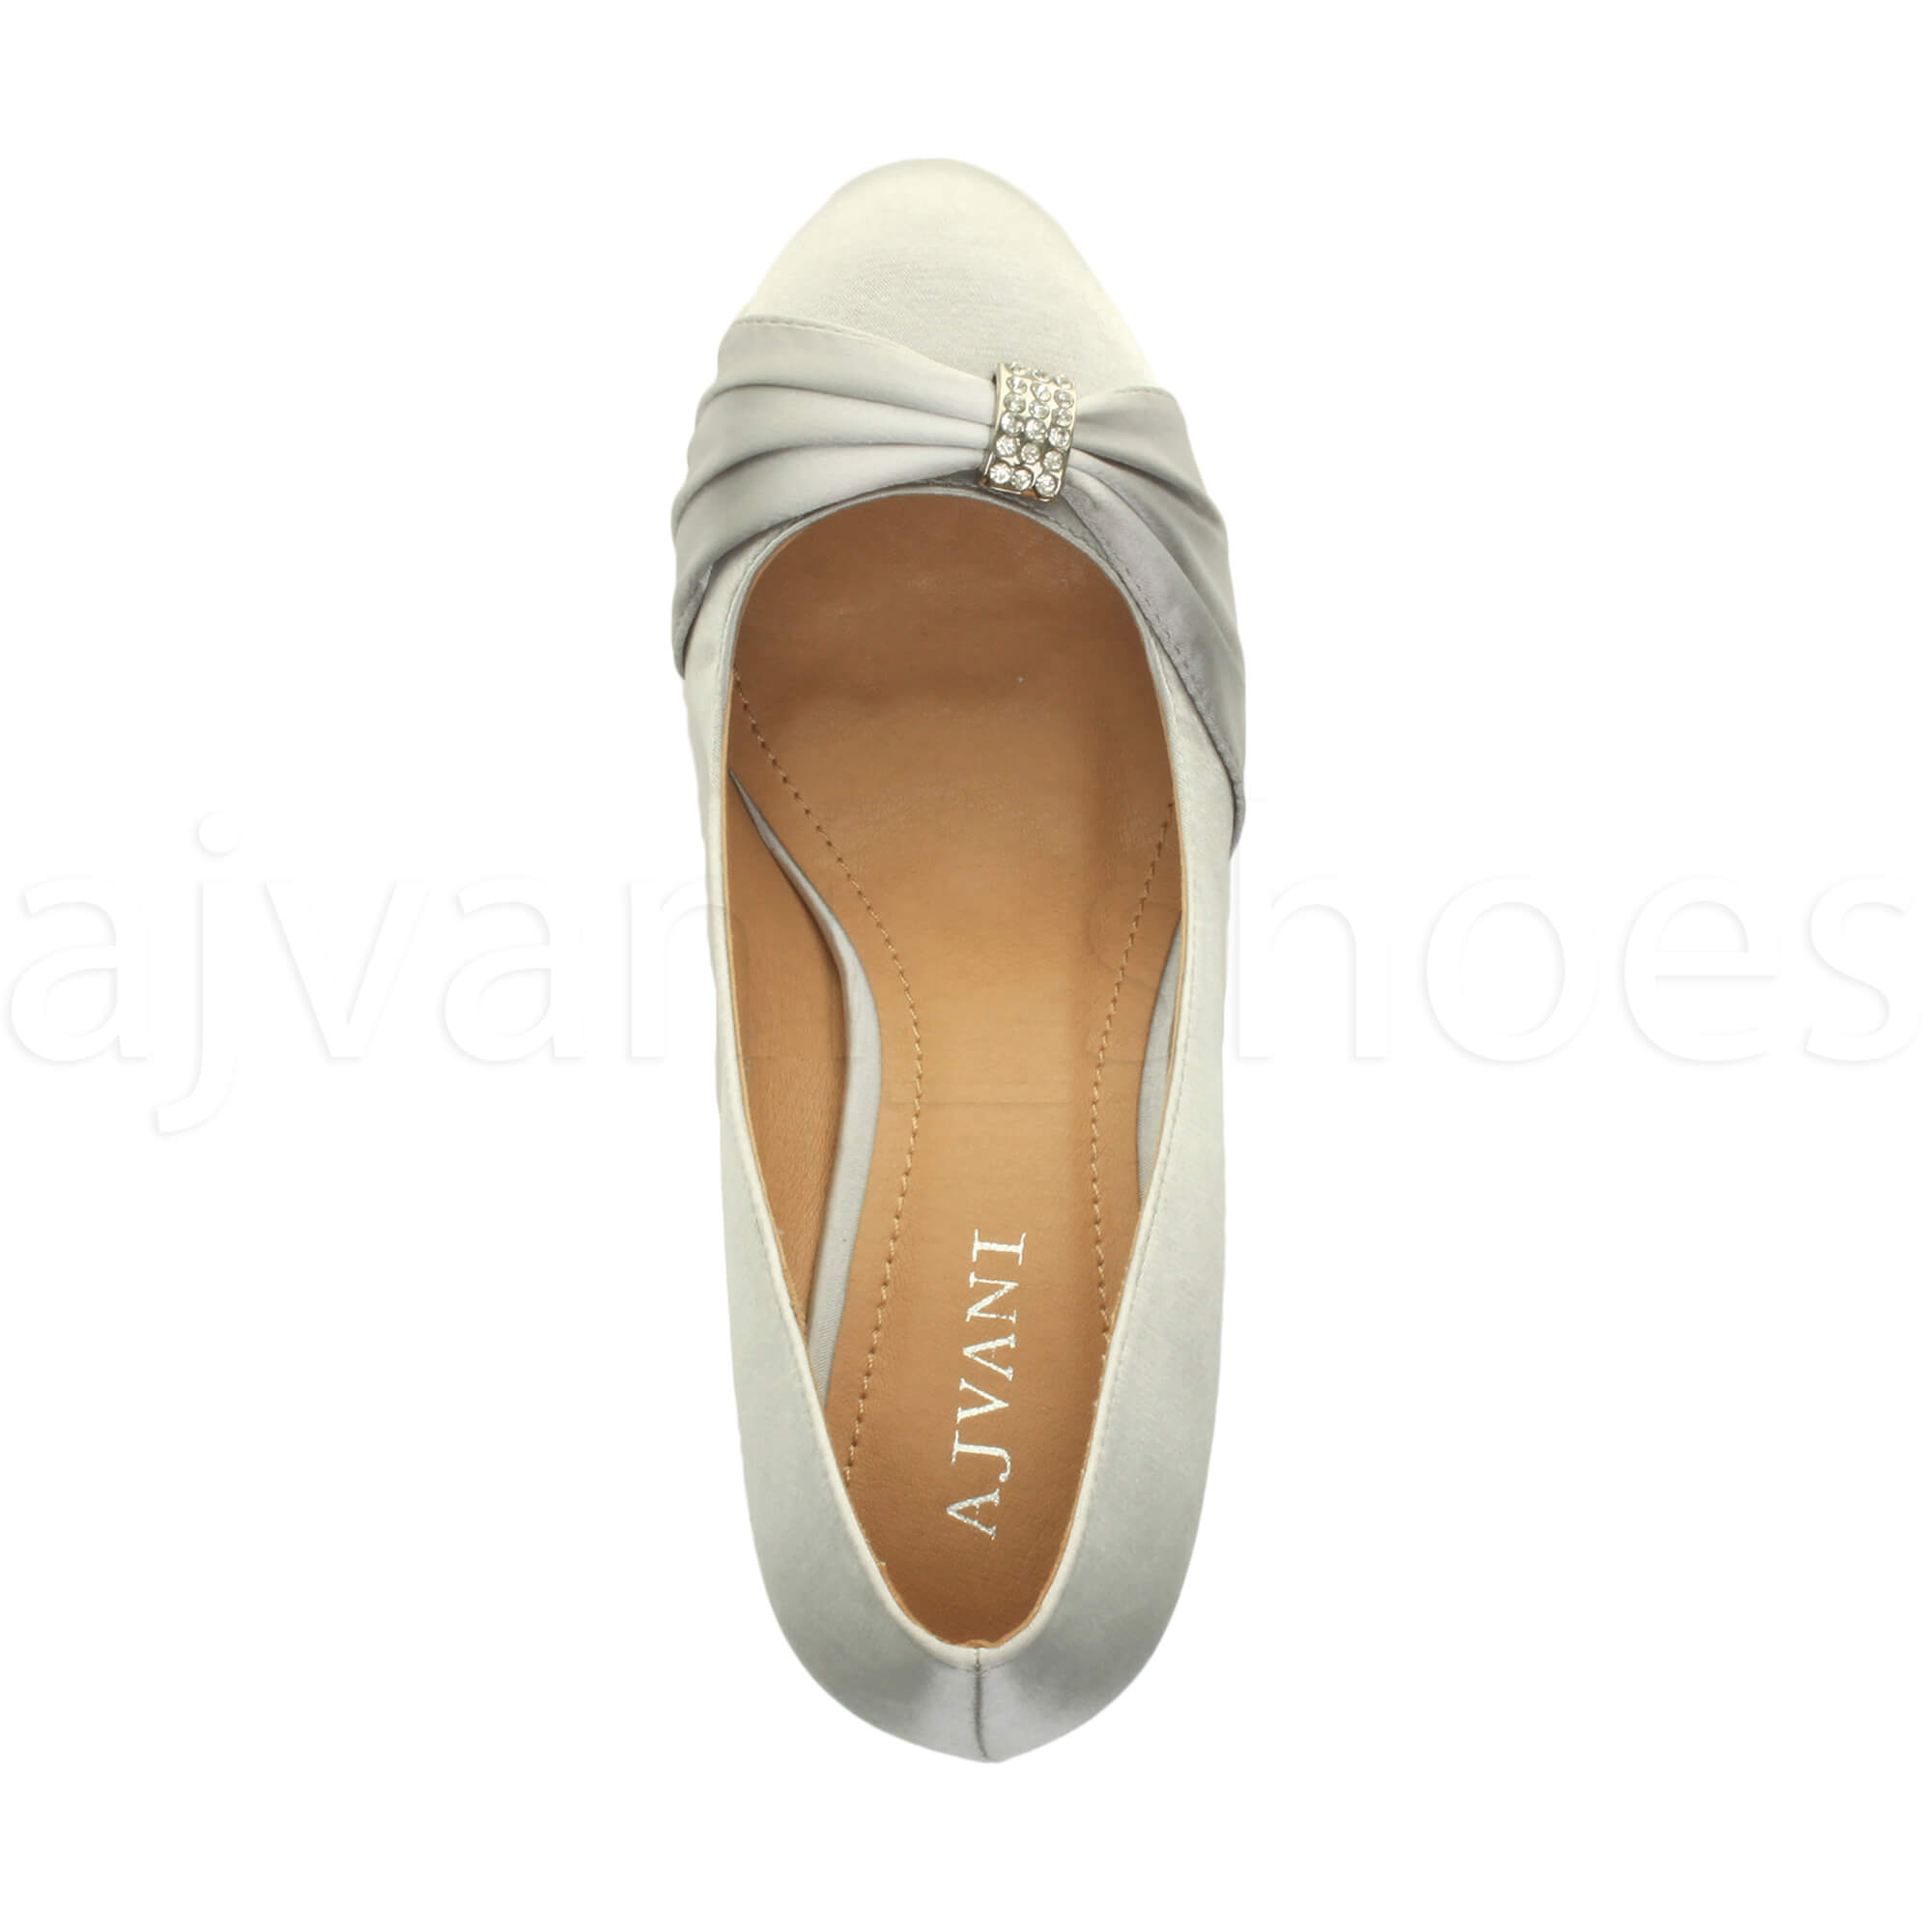 WOMENS-LADIES-MID-HEEL-RUCHED-DIAMANTE-WEDDING-PROM-EVENING-COURT-SHOES-SIZE thumbnail 96